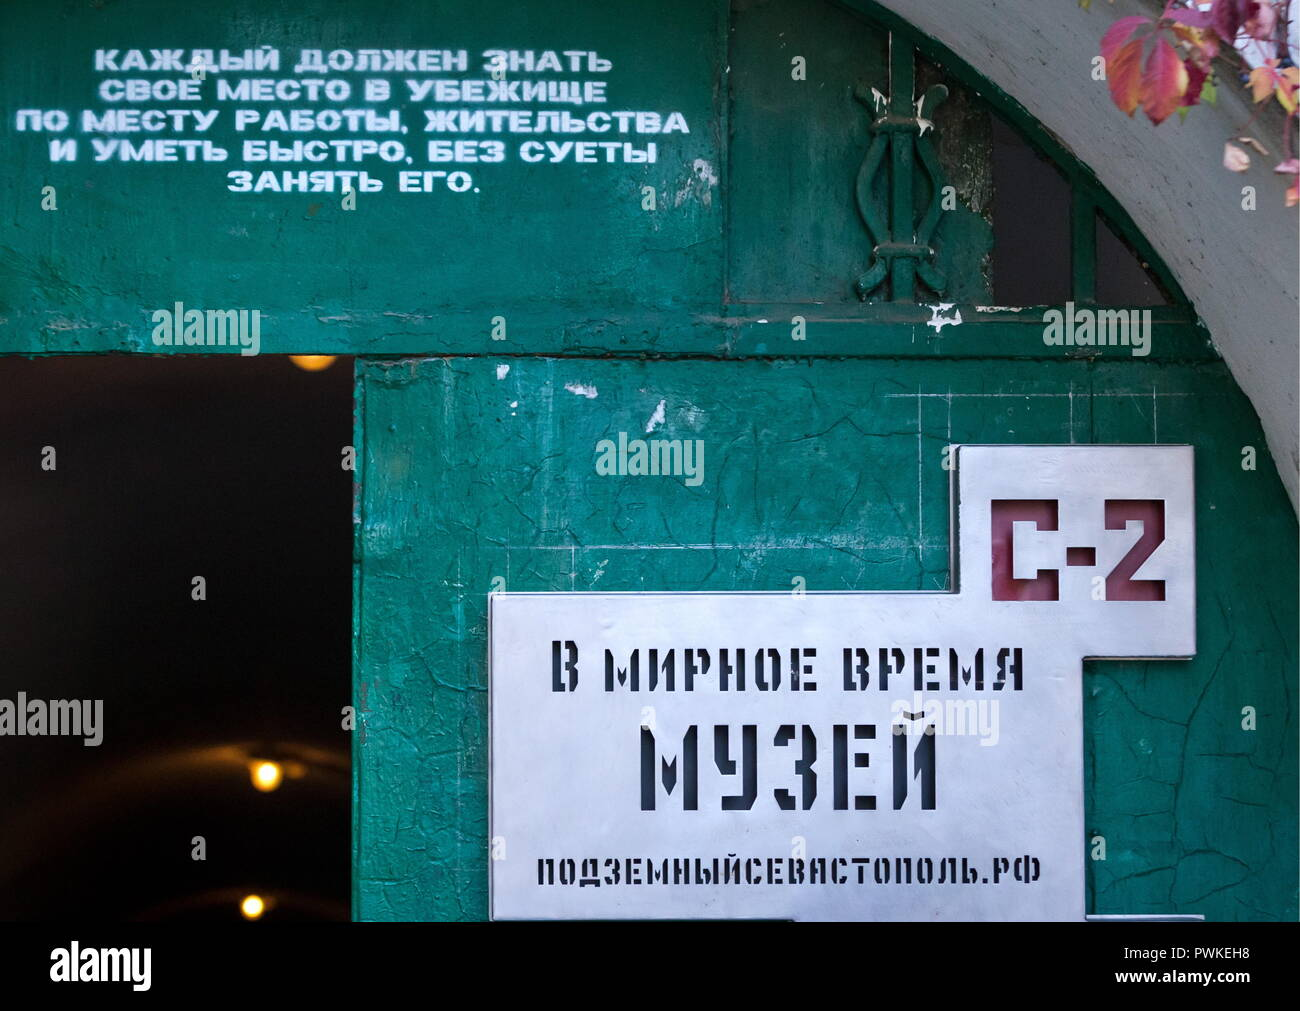 CRIMEA, RUSSIA - OCTOBER 16, 2018: A sign at the 'Underground Sevastopol' museum based at a functioning nuclear bunker under Sevastopol's city centre. The bunker rates first-class and is optimized for sheltering up to 1.000 people; it was built in 1952 but has never been used since. In case of emergency, the bunker can be prepared to shelter people in 12 hours. The nuclear bunker is part of an underground system of atomic shelters which can host the city's residents and authorities, as well as several plants and schools, in case of a nuclear attack. Sergei Malgavko/TASS - Stock Image